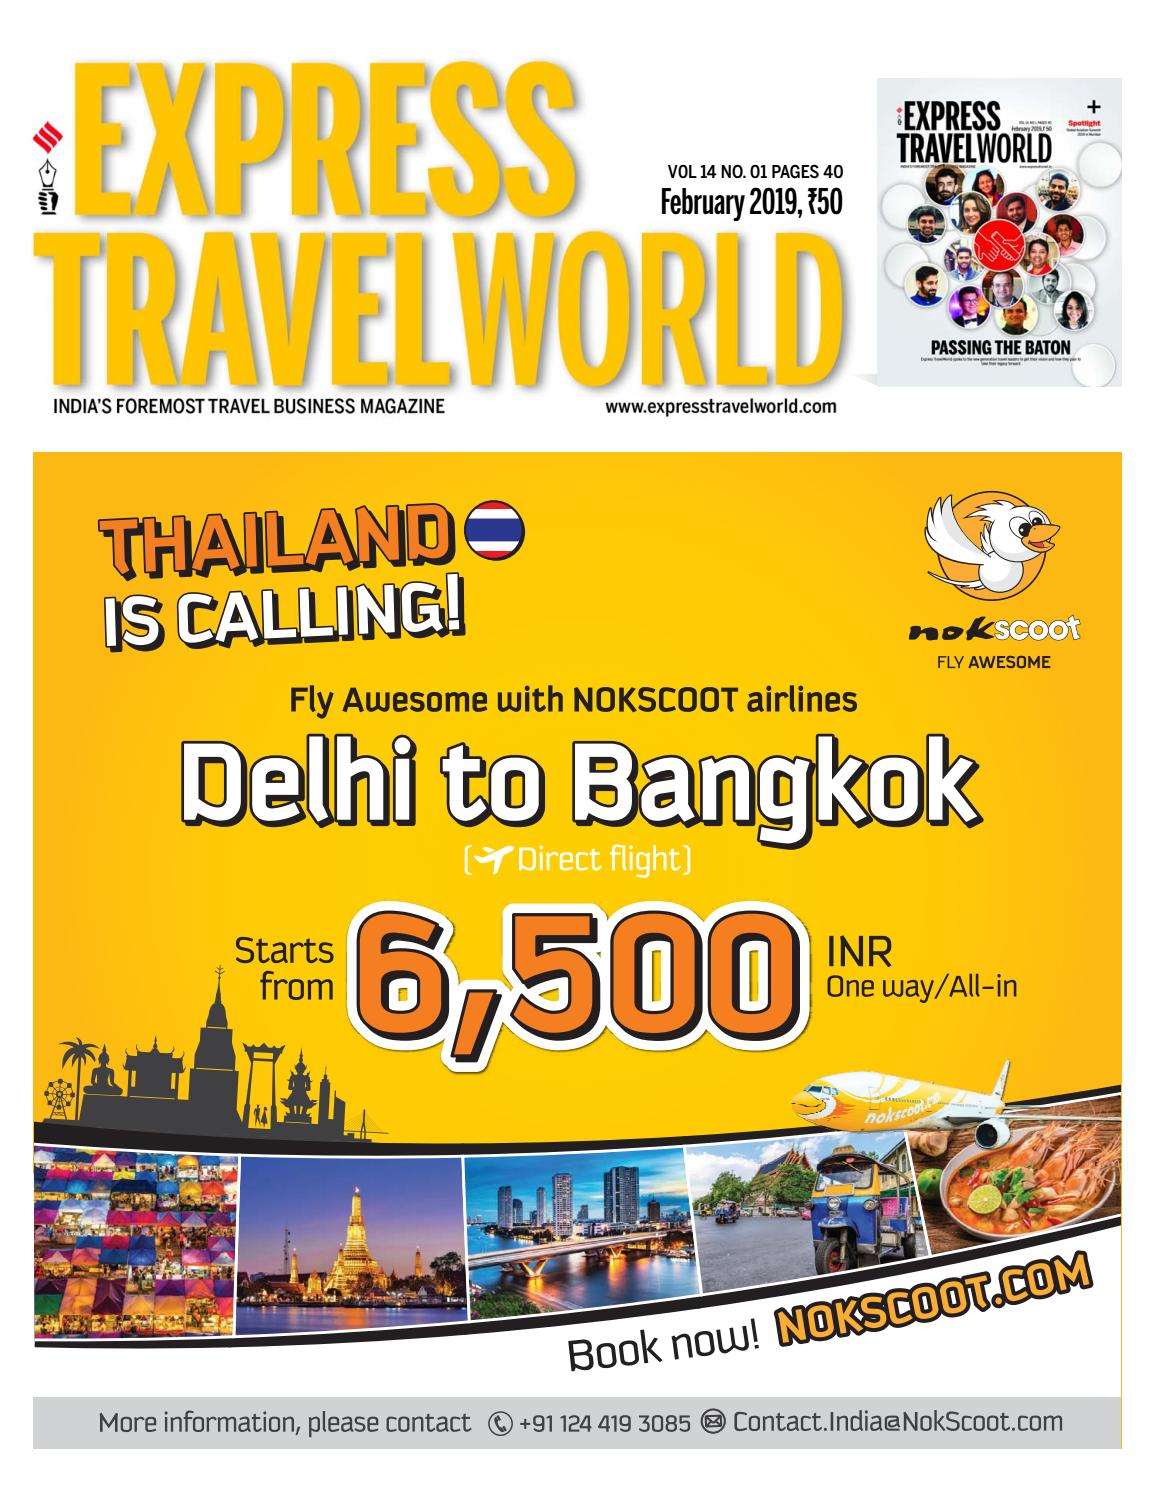 Express TravelWorld (Vol 14 No 1) February, 2019 by Indian Express